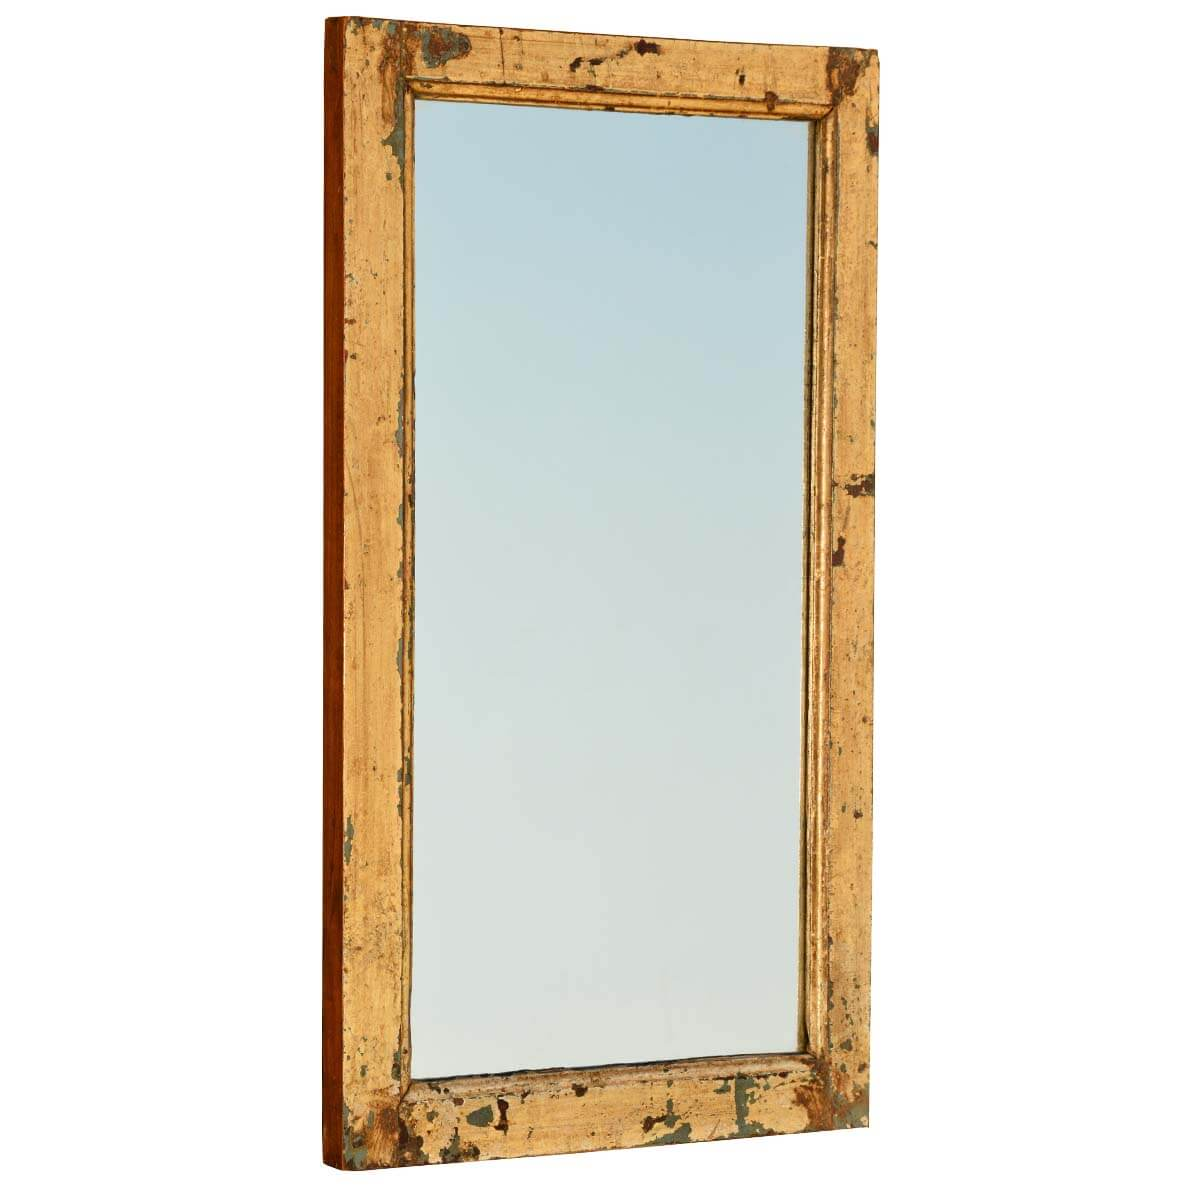 Rustic reclaimed wood distressed rectangular framed mirror for Wood framed mirrors